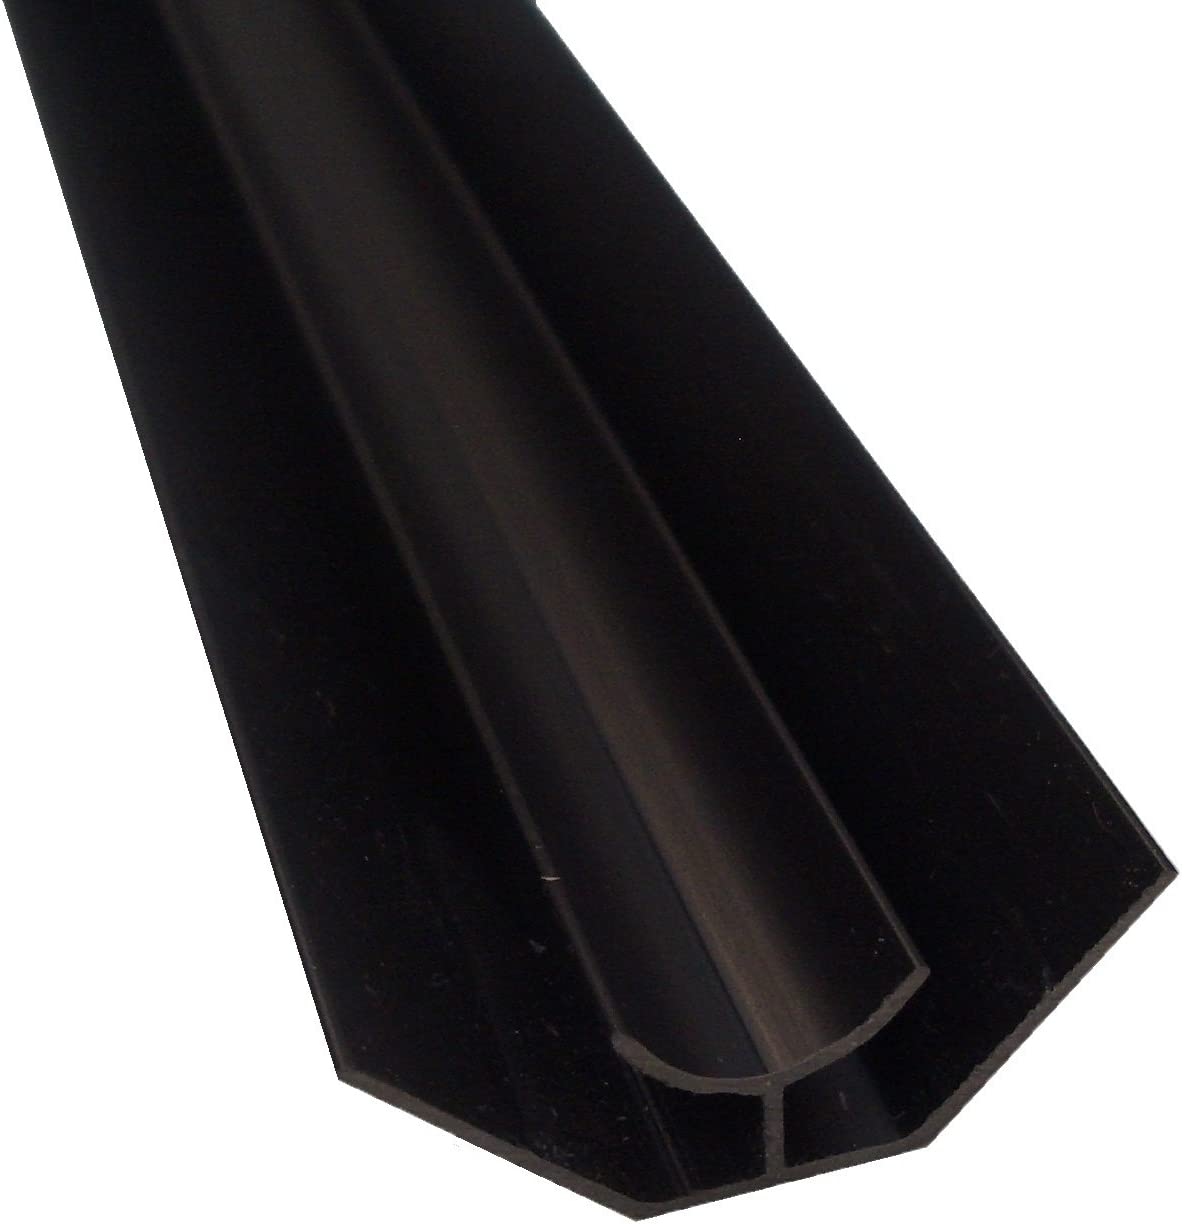 Black Panel Trim Perfect for Bathroom Kitchen Shower Wall PVC Cladding Panels-5mm Internal Black Edging Trim-100/% Waterproof-Use with Claddtech Adhesive